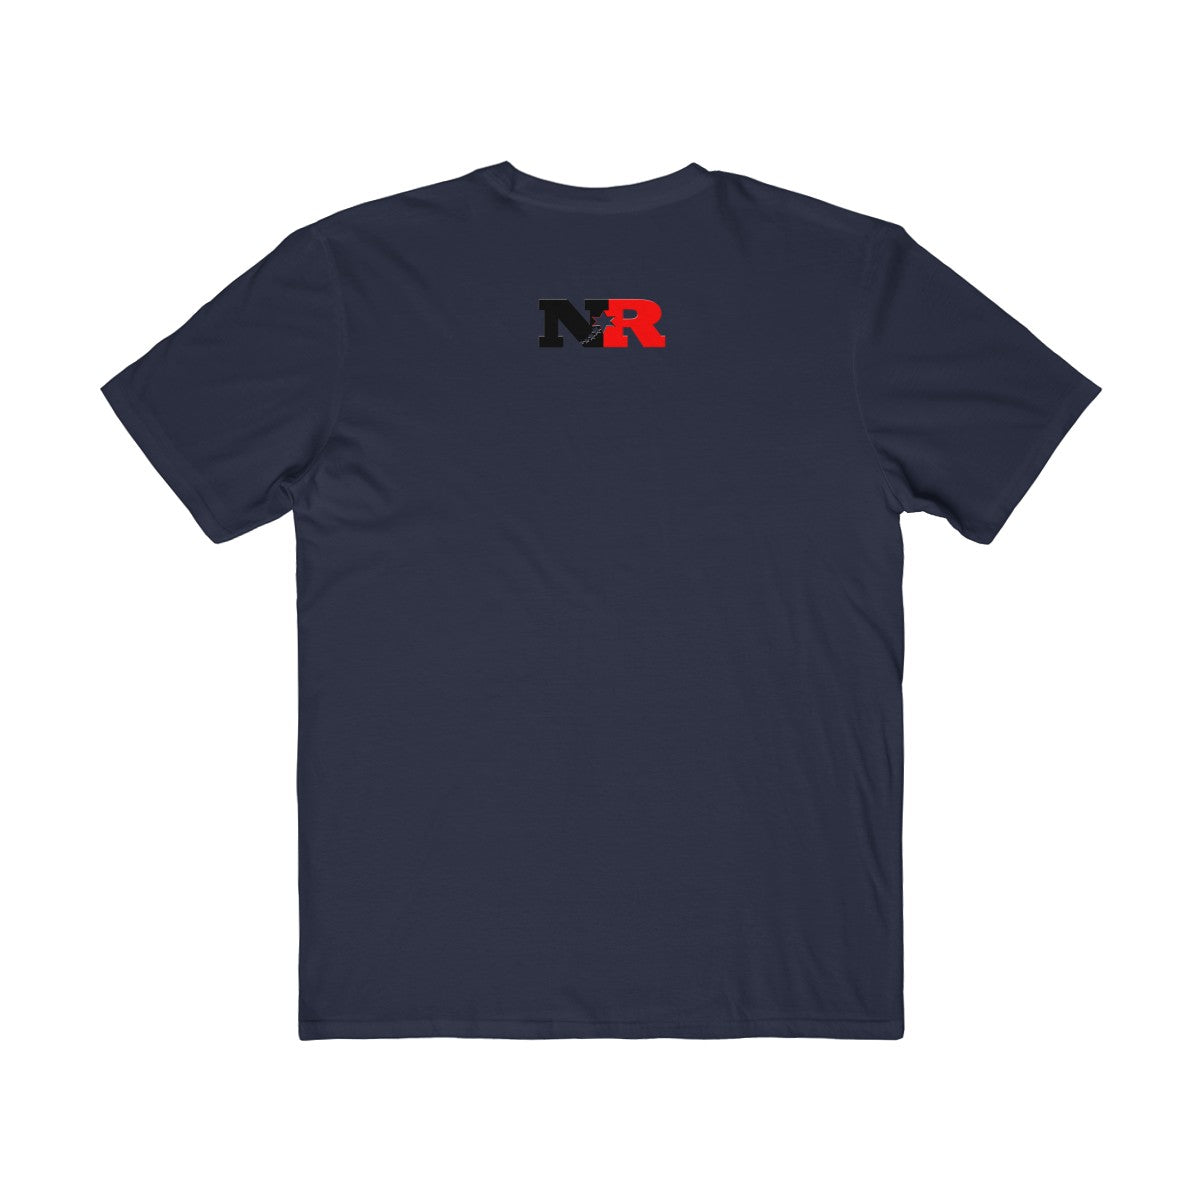 Men's Very Important Tee - Bespoke Generation